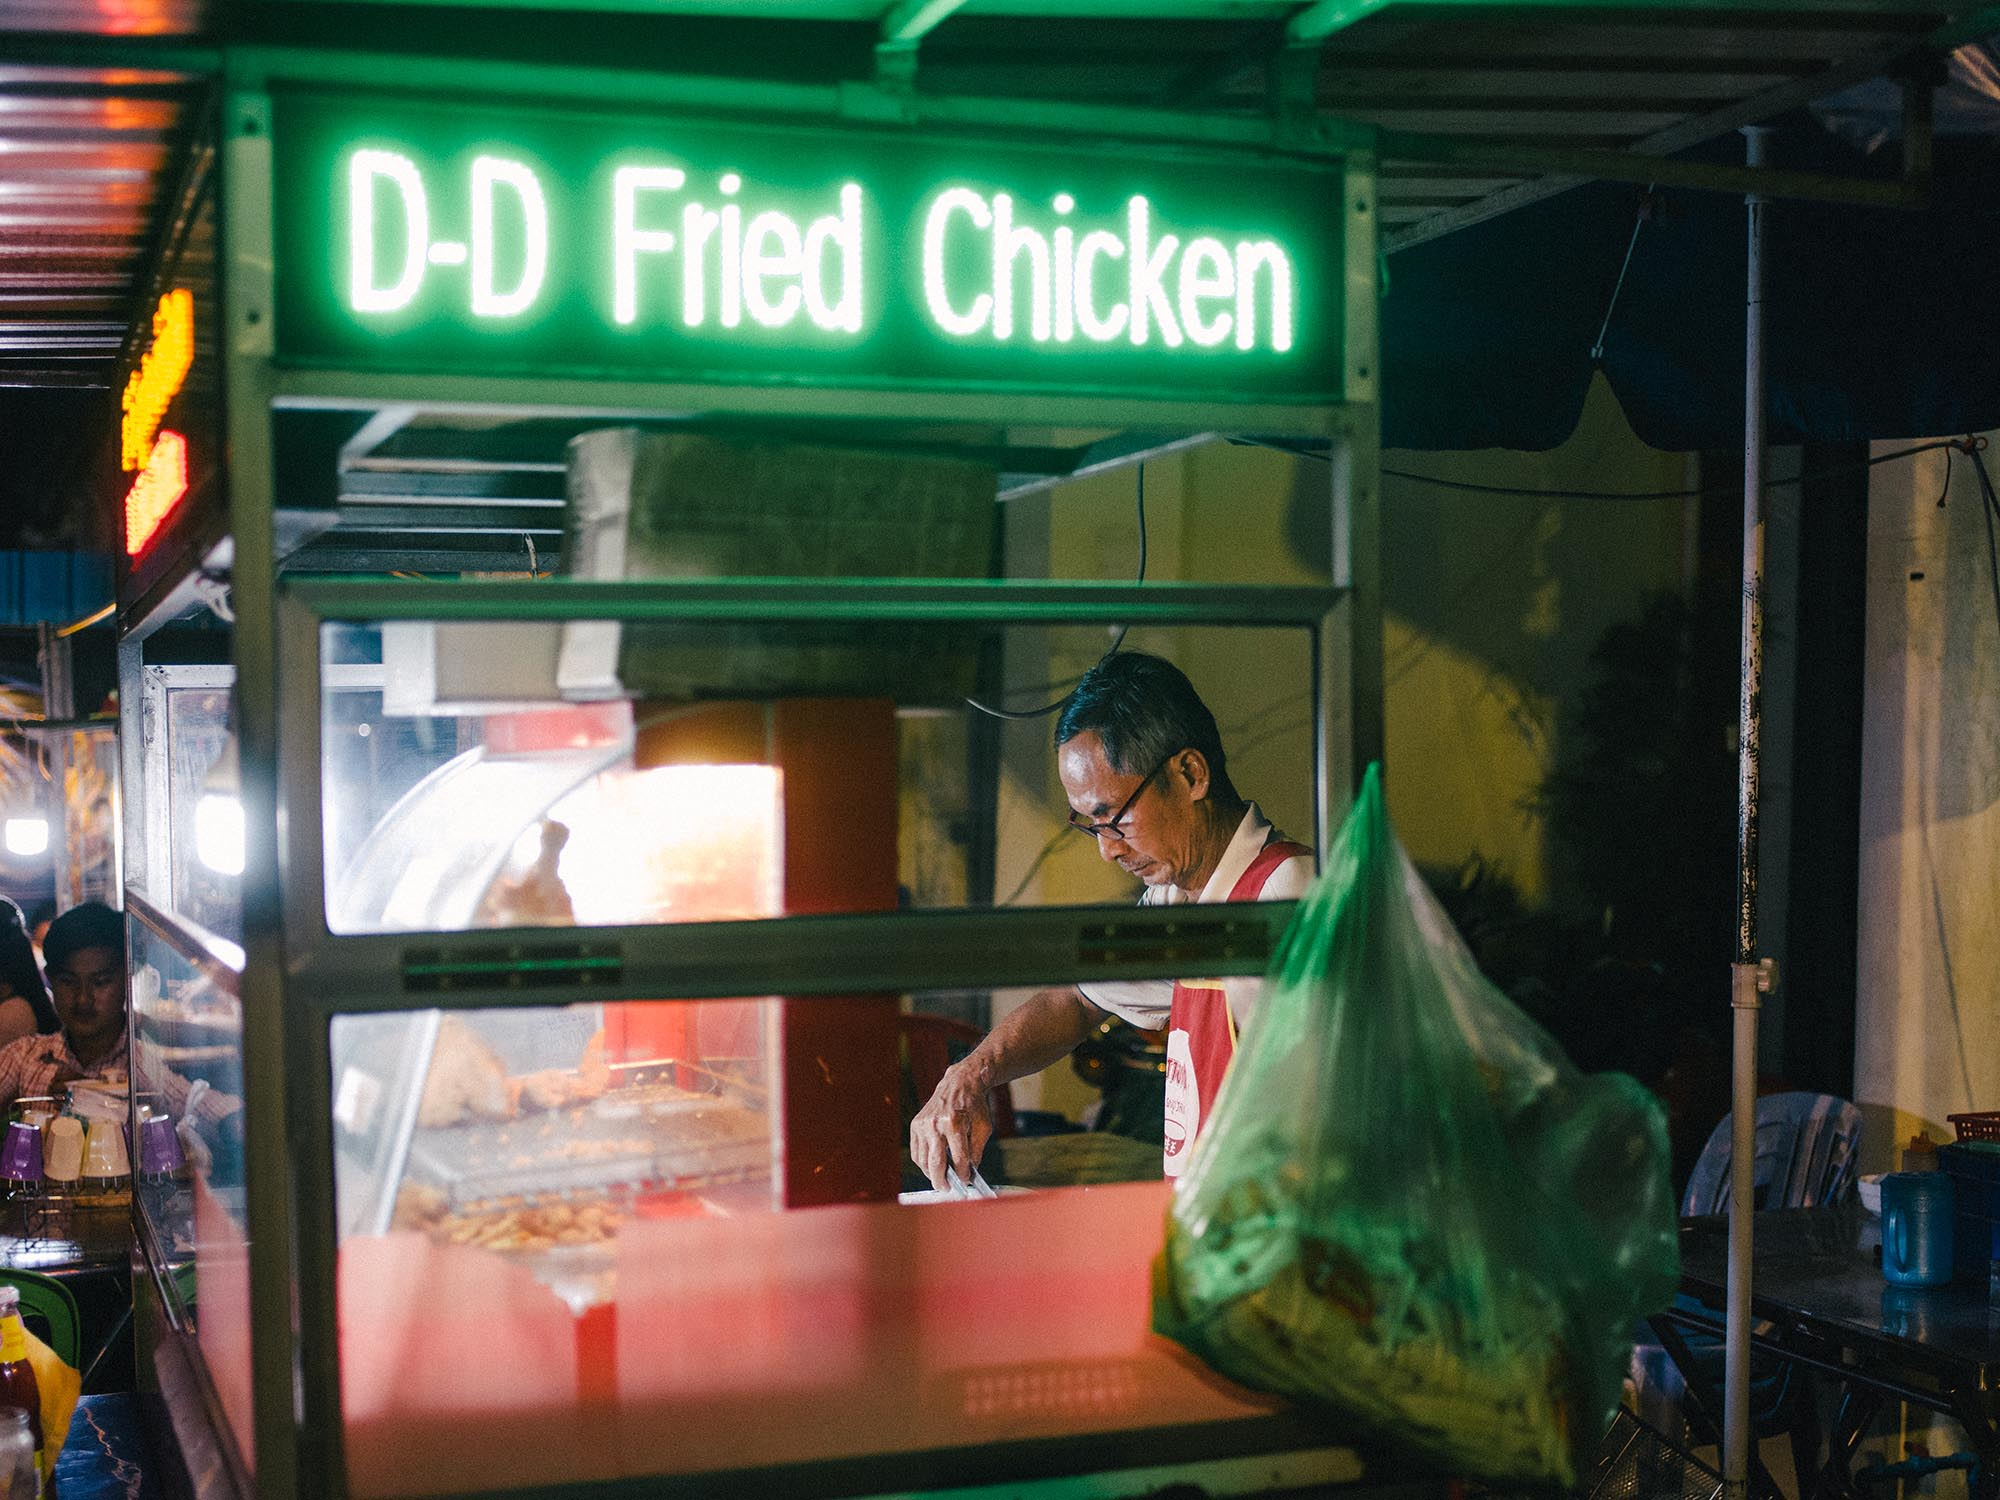 Fried chicken is everywhere!